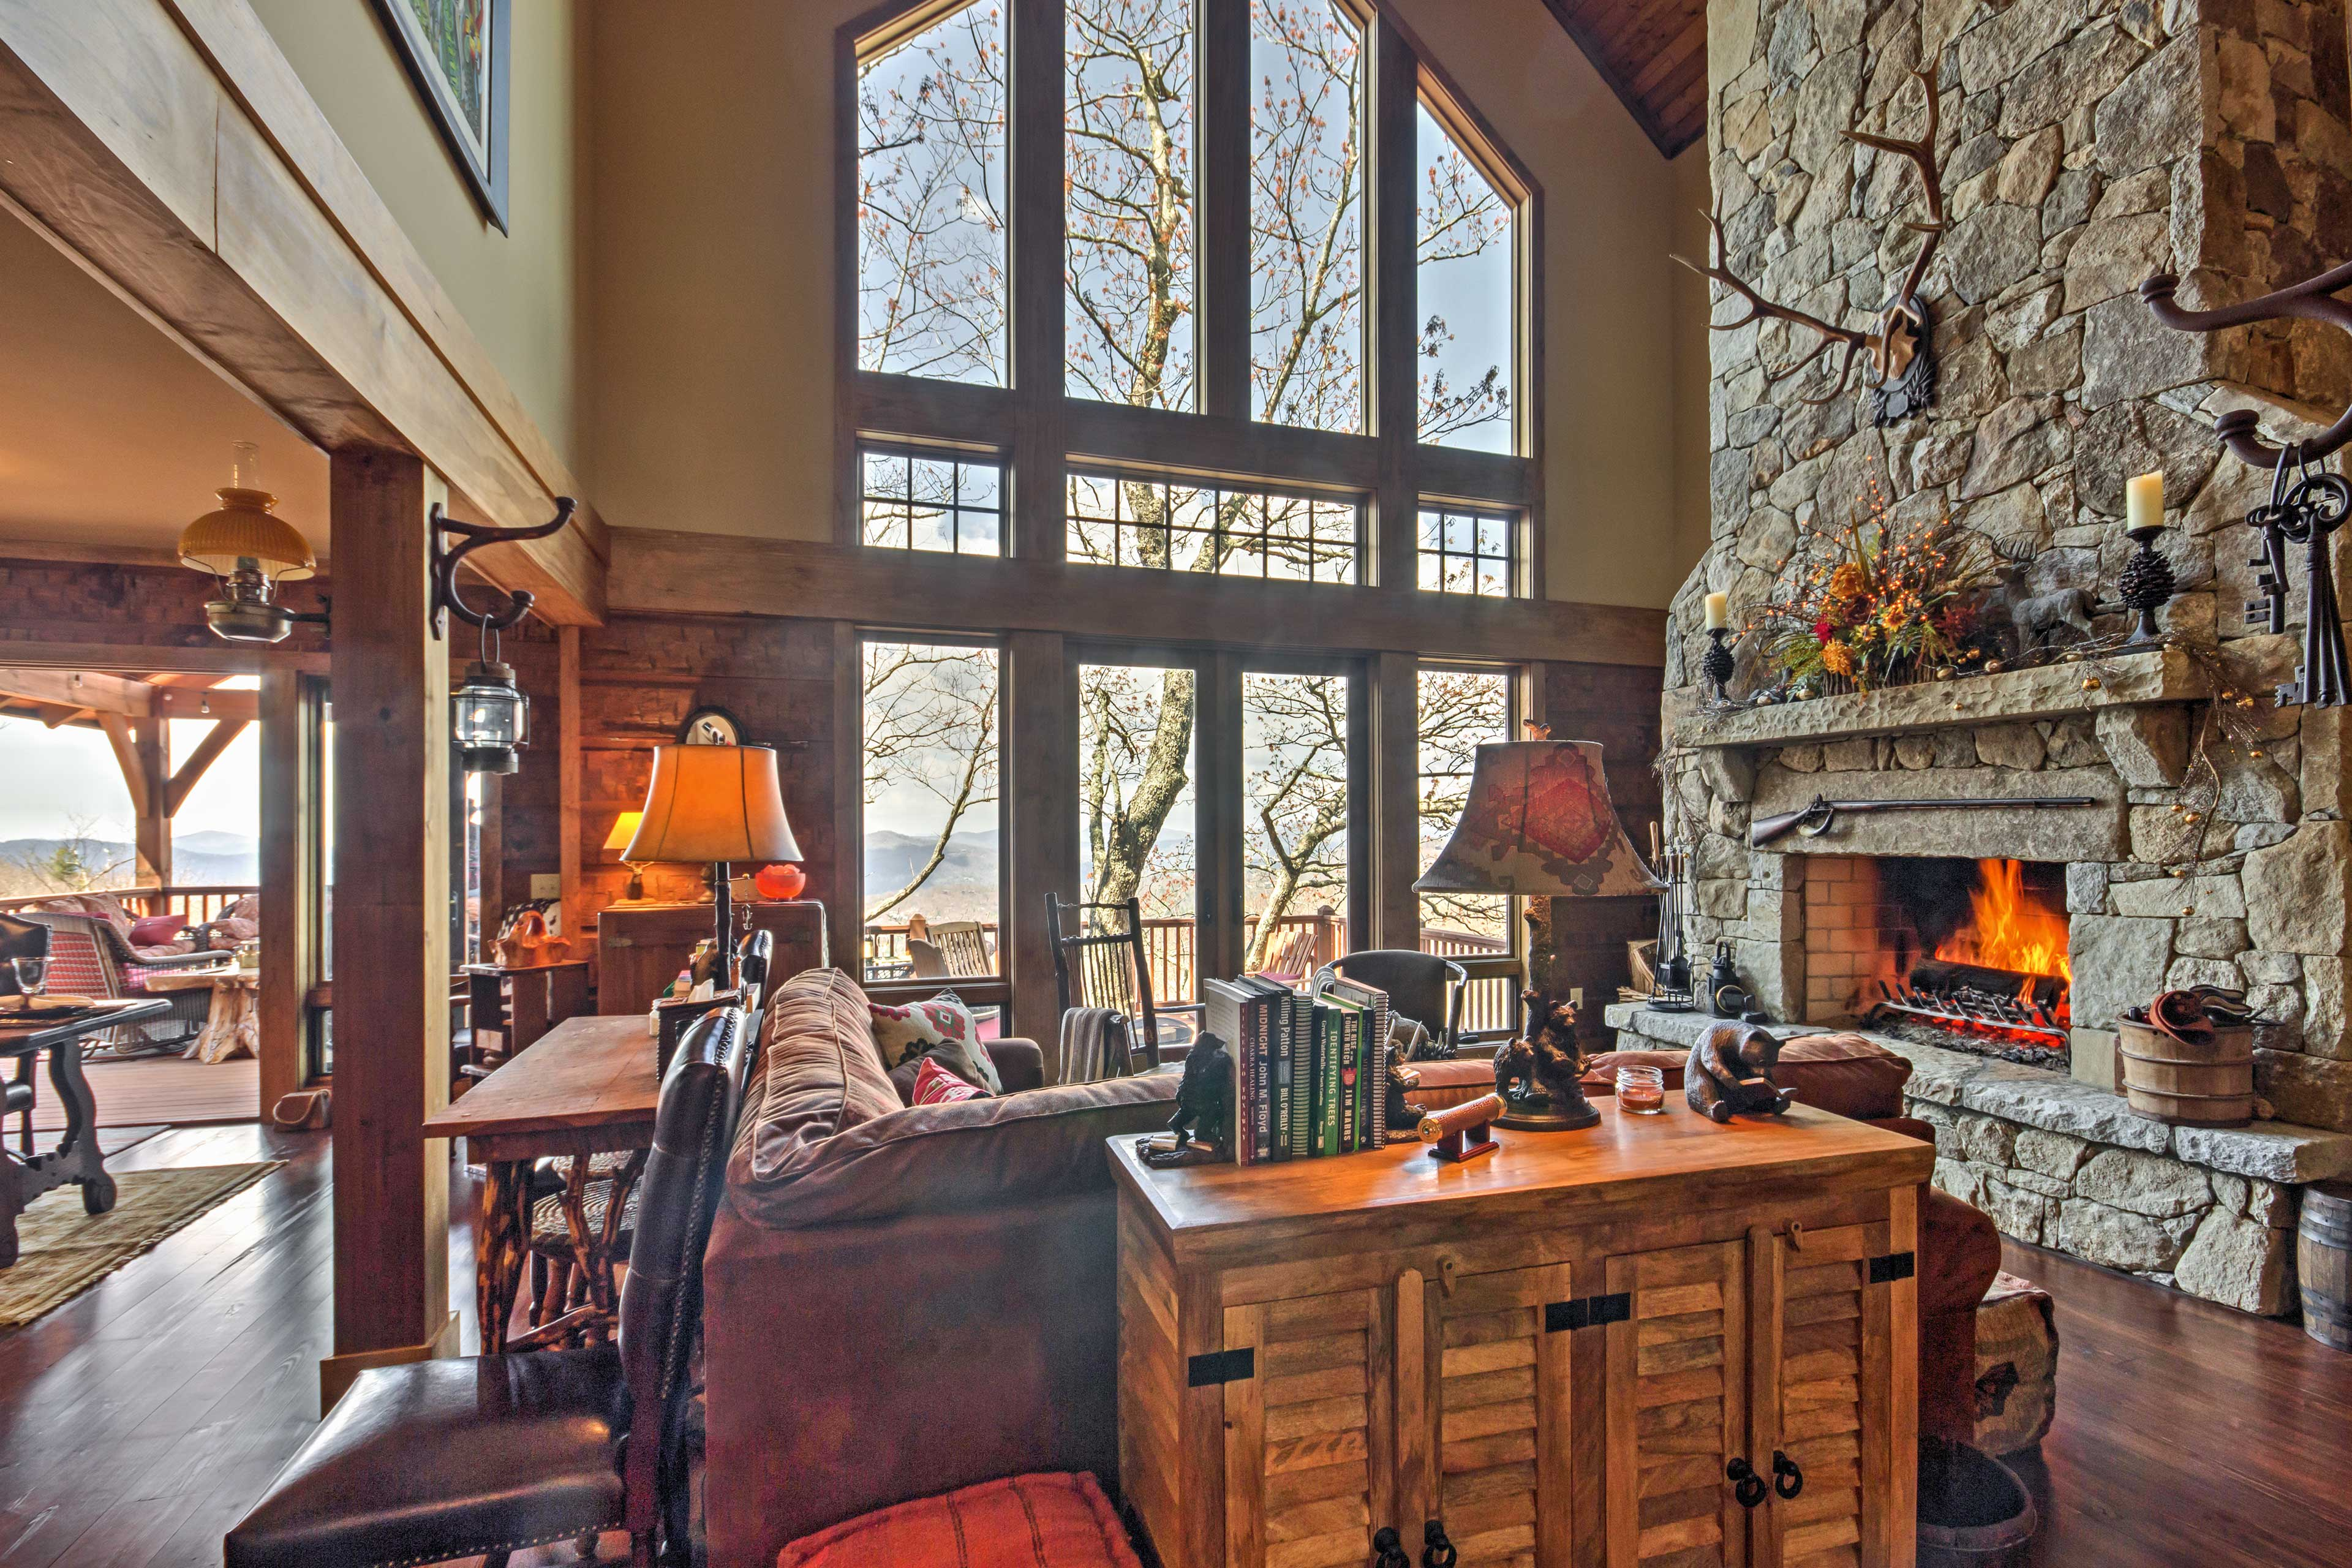 The living room's floor-to-ceiling windows offer mountain views as well!